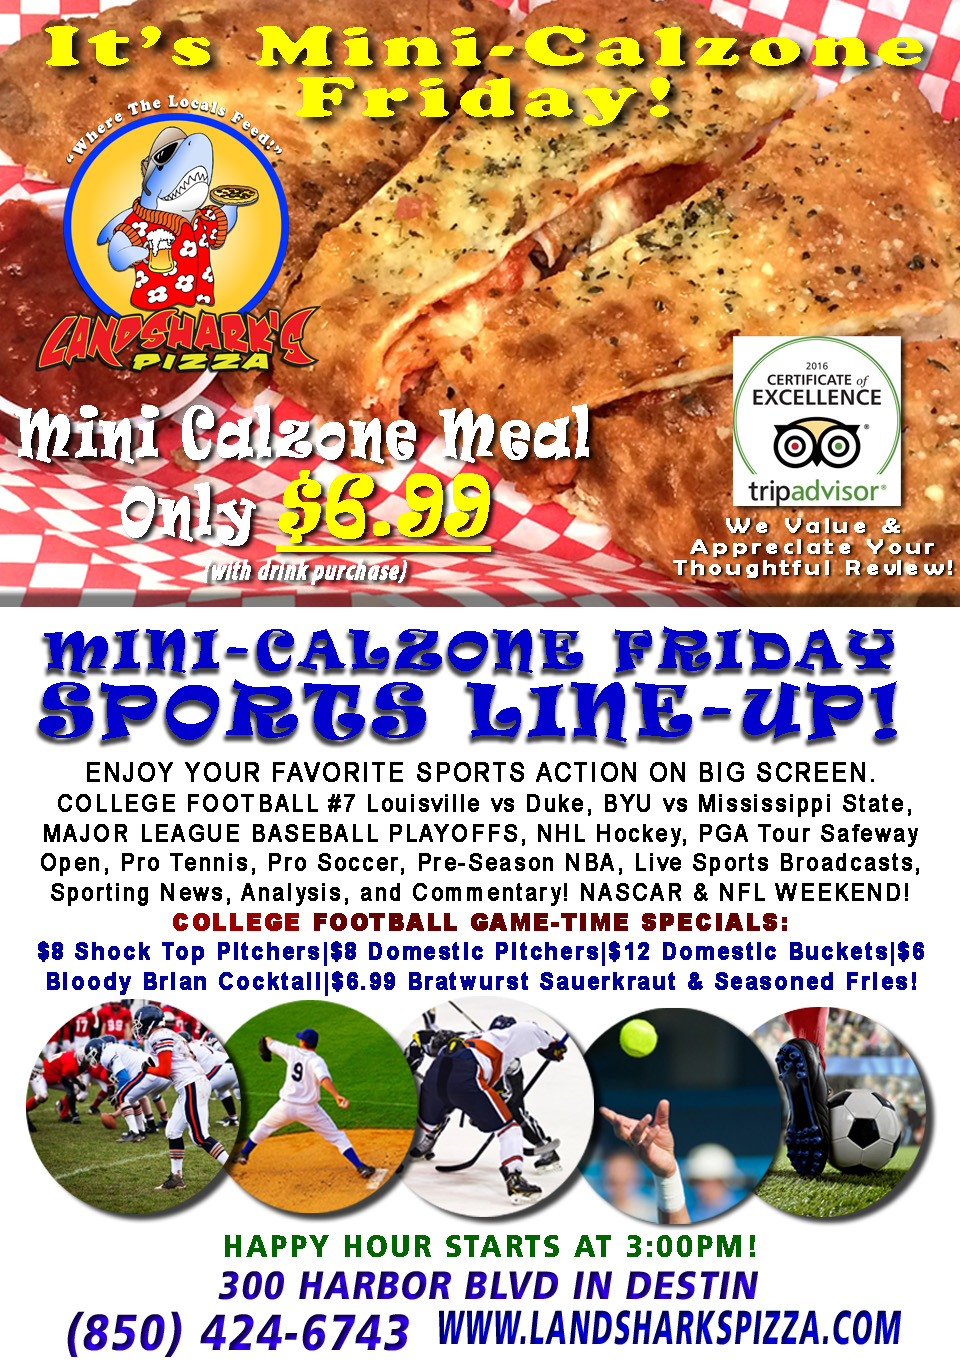 best-calzones-in-destin-fl-at-landsharks-with-college-football-10-14-16a